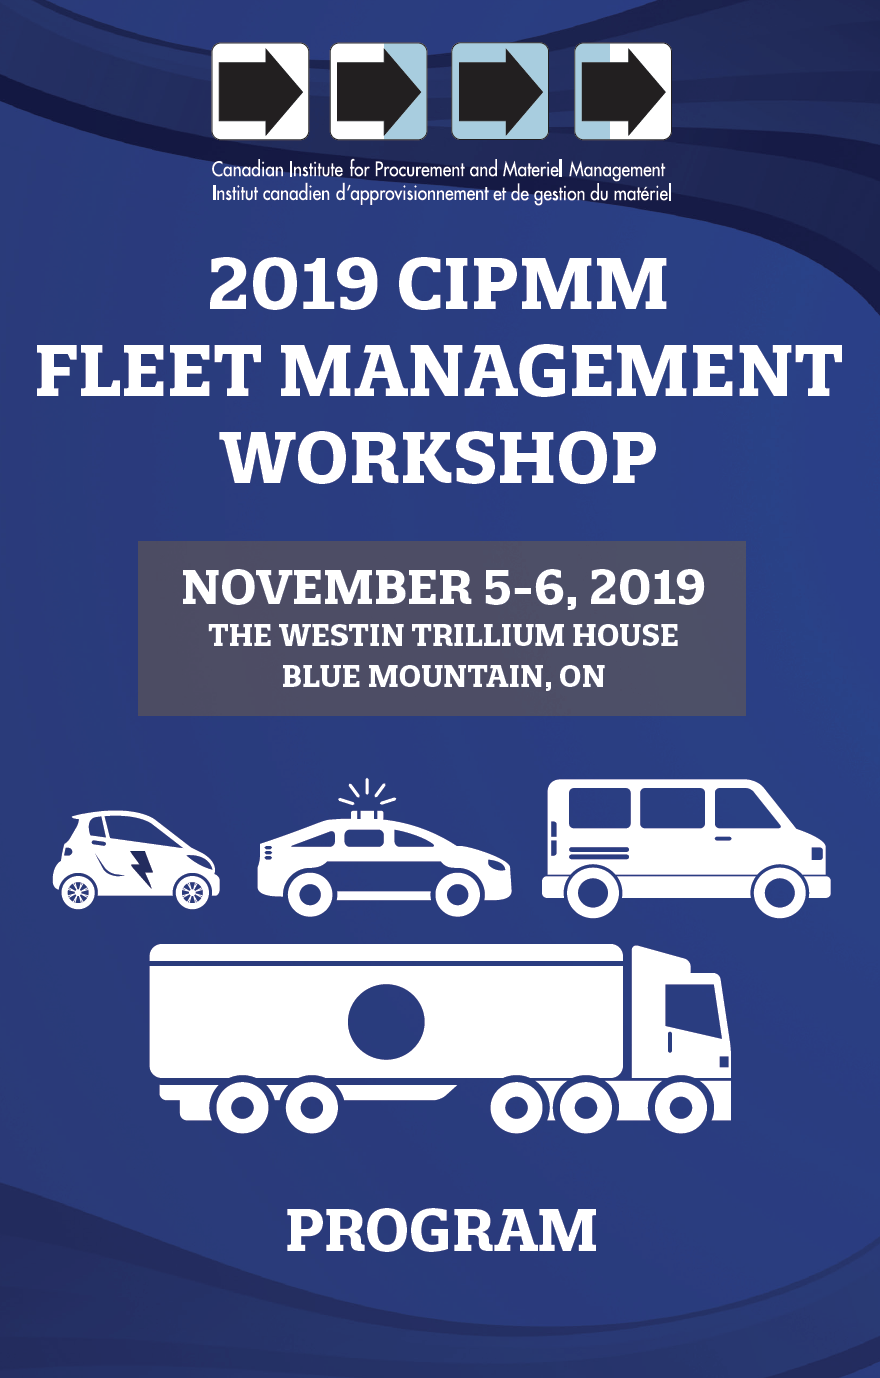 Fleet Management Workshop 2019